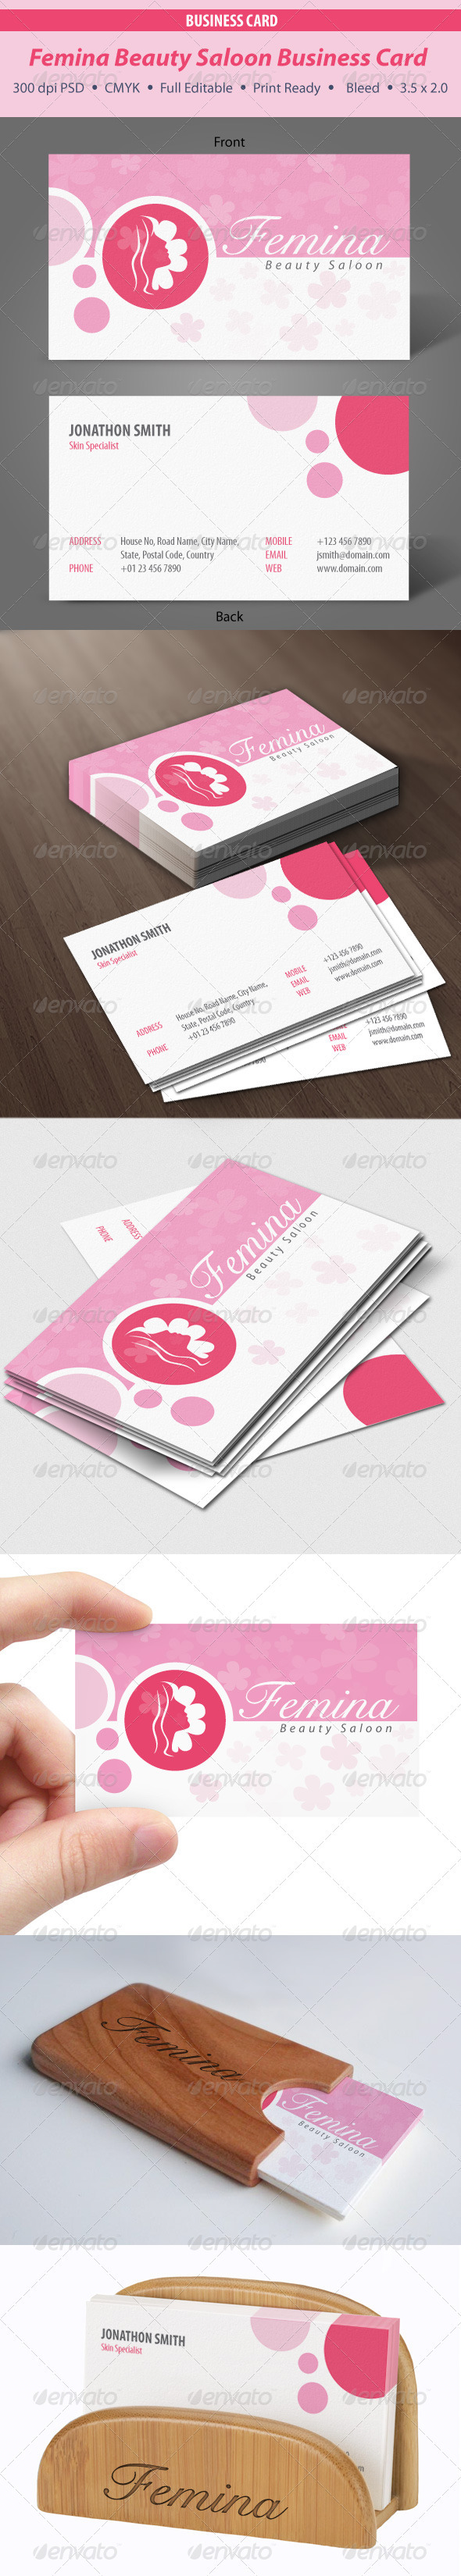 GraphicRiver Femina Beauty Saloon Business Card 3930549